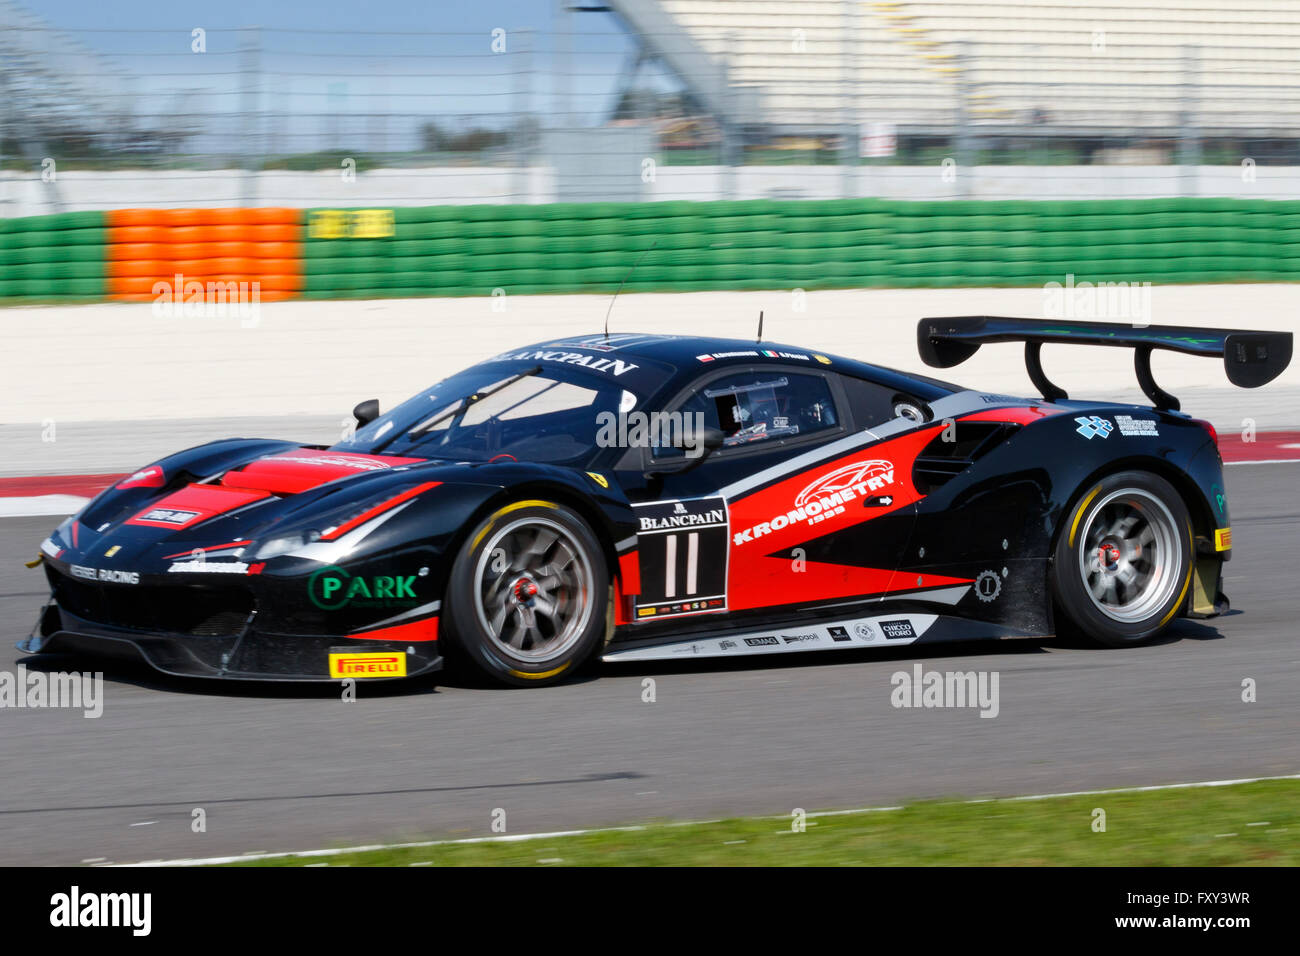 misano adriatico italy april 10 2016 ferrari 488 gt3 of kessel stock photo 102628675 alamy. Black Bedroom Furniture Sets. Home Design Ideas